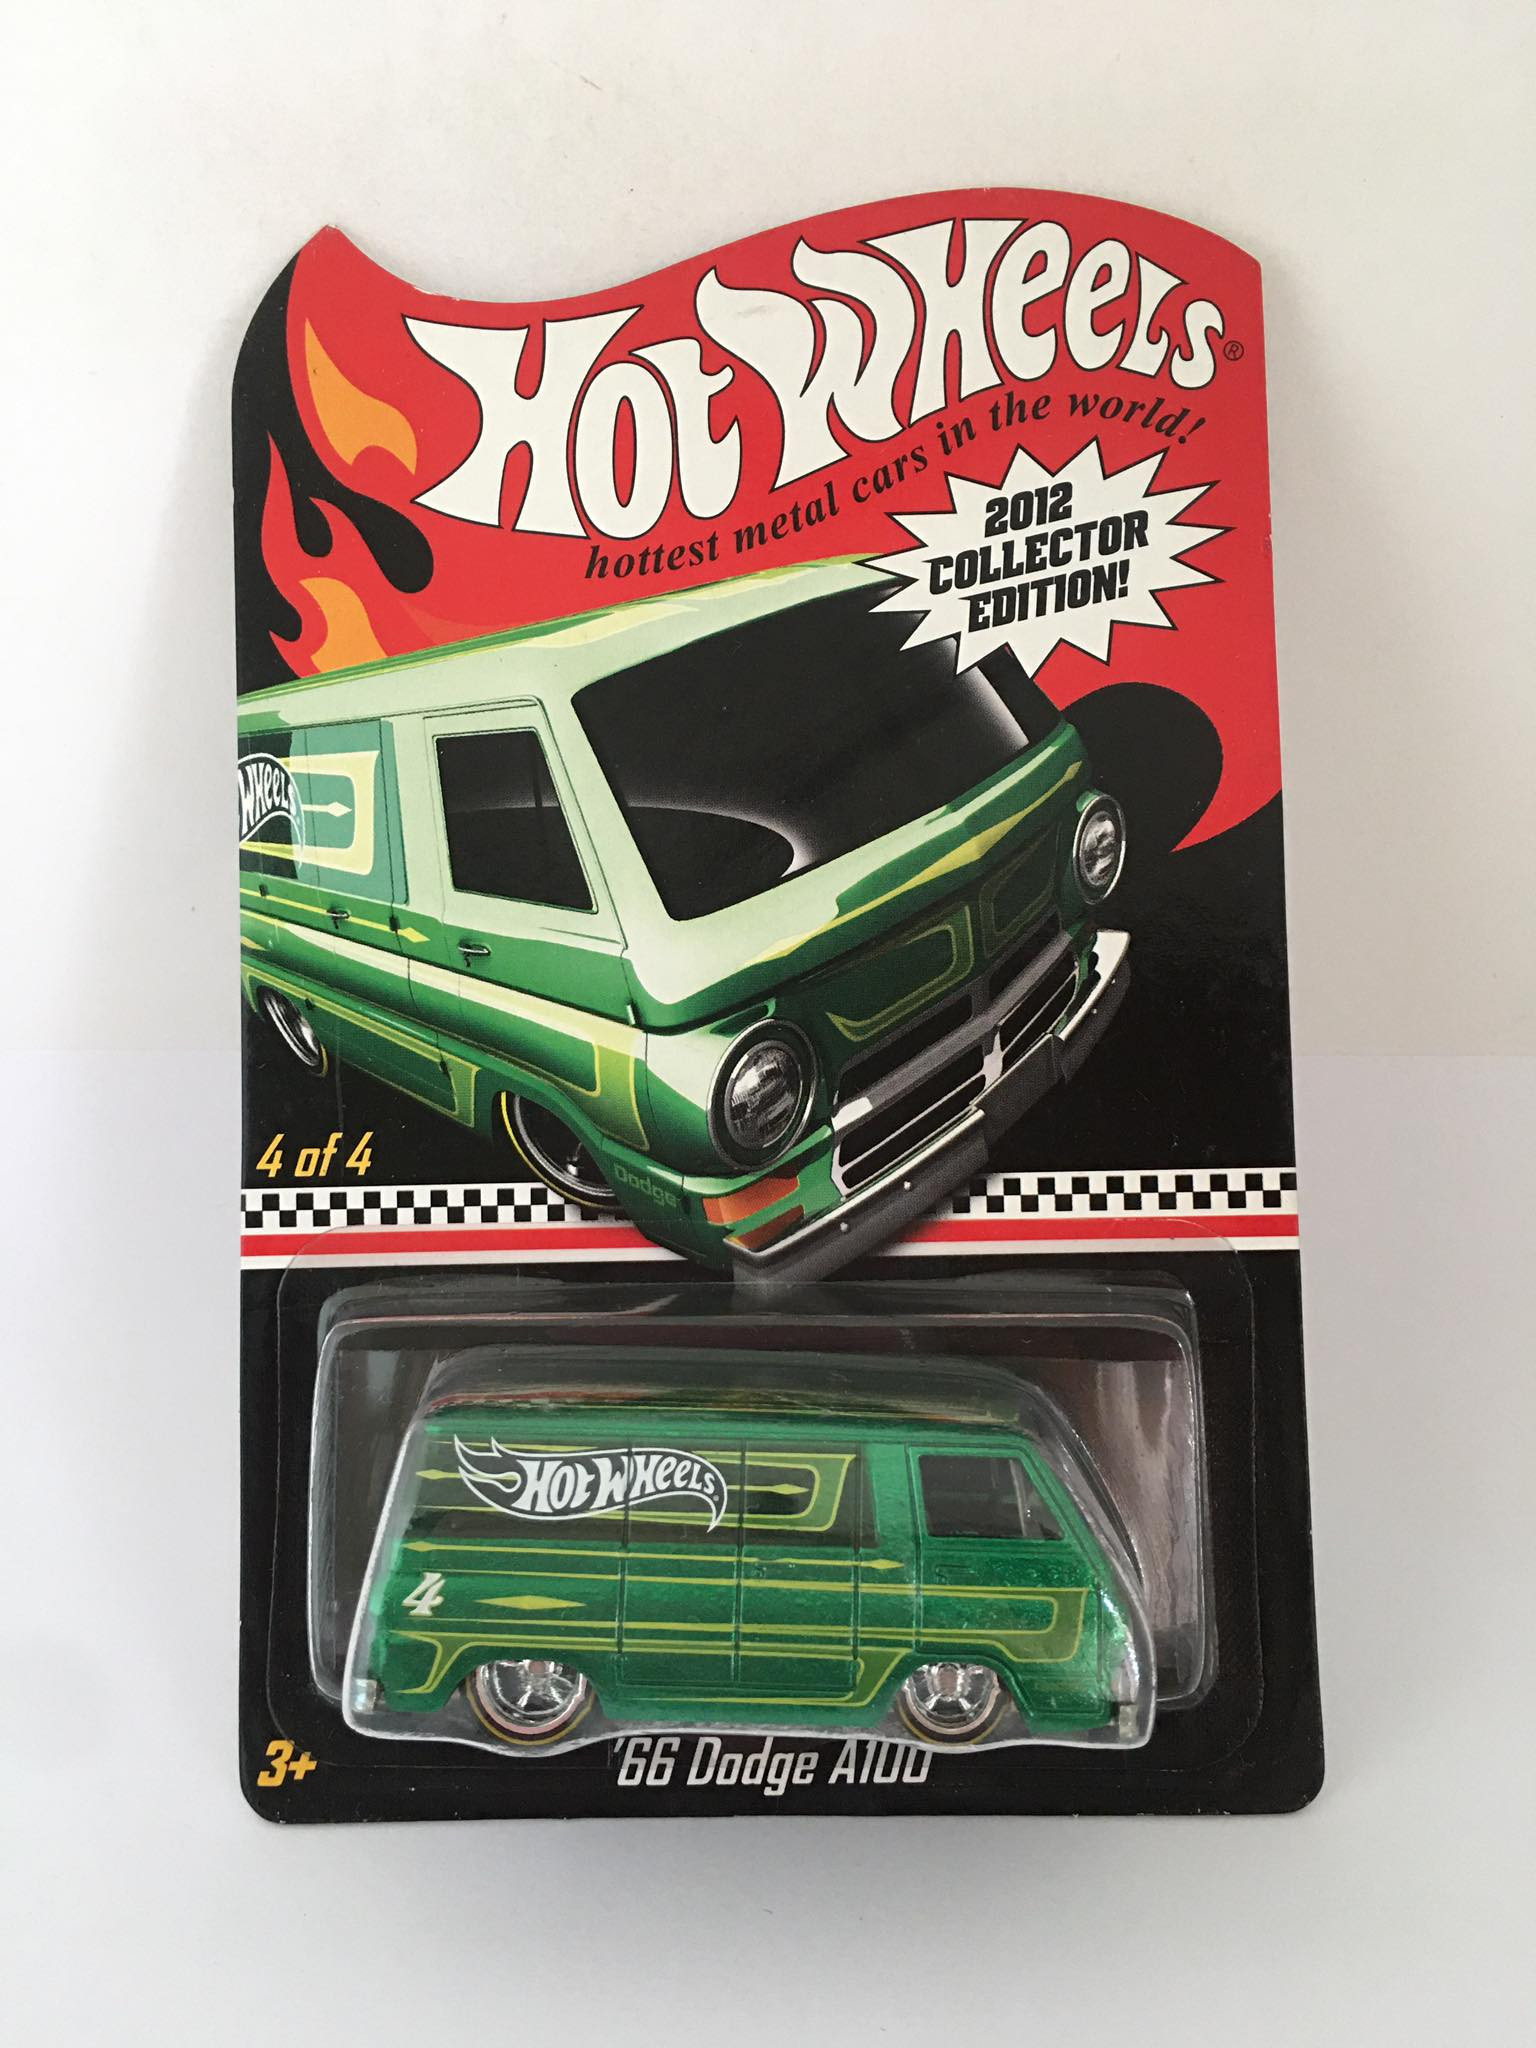 Hot Wheels - 66 Dodge A100 -  2012 Collector Edition Kmart